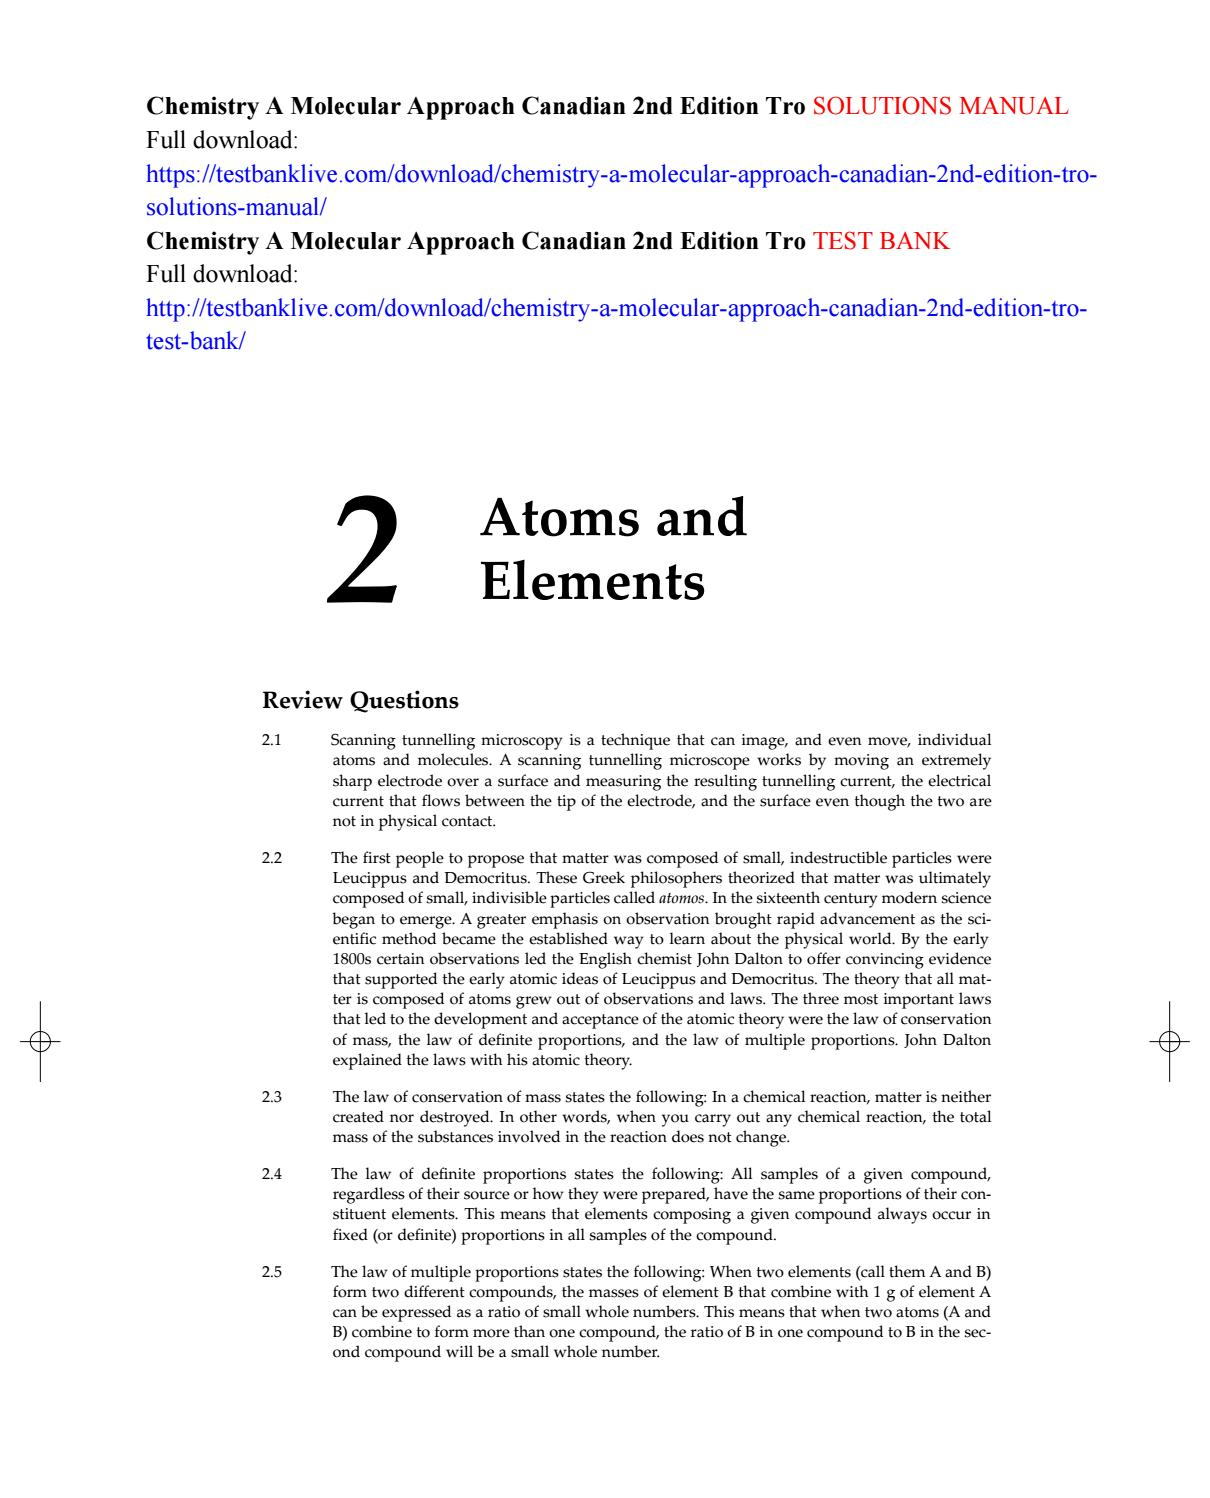 Chemistry a molecular approach canadian 2nd edition tro solutions manual by  Geosciences - issuu